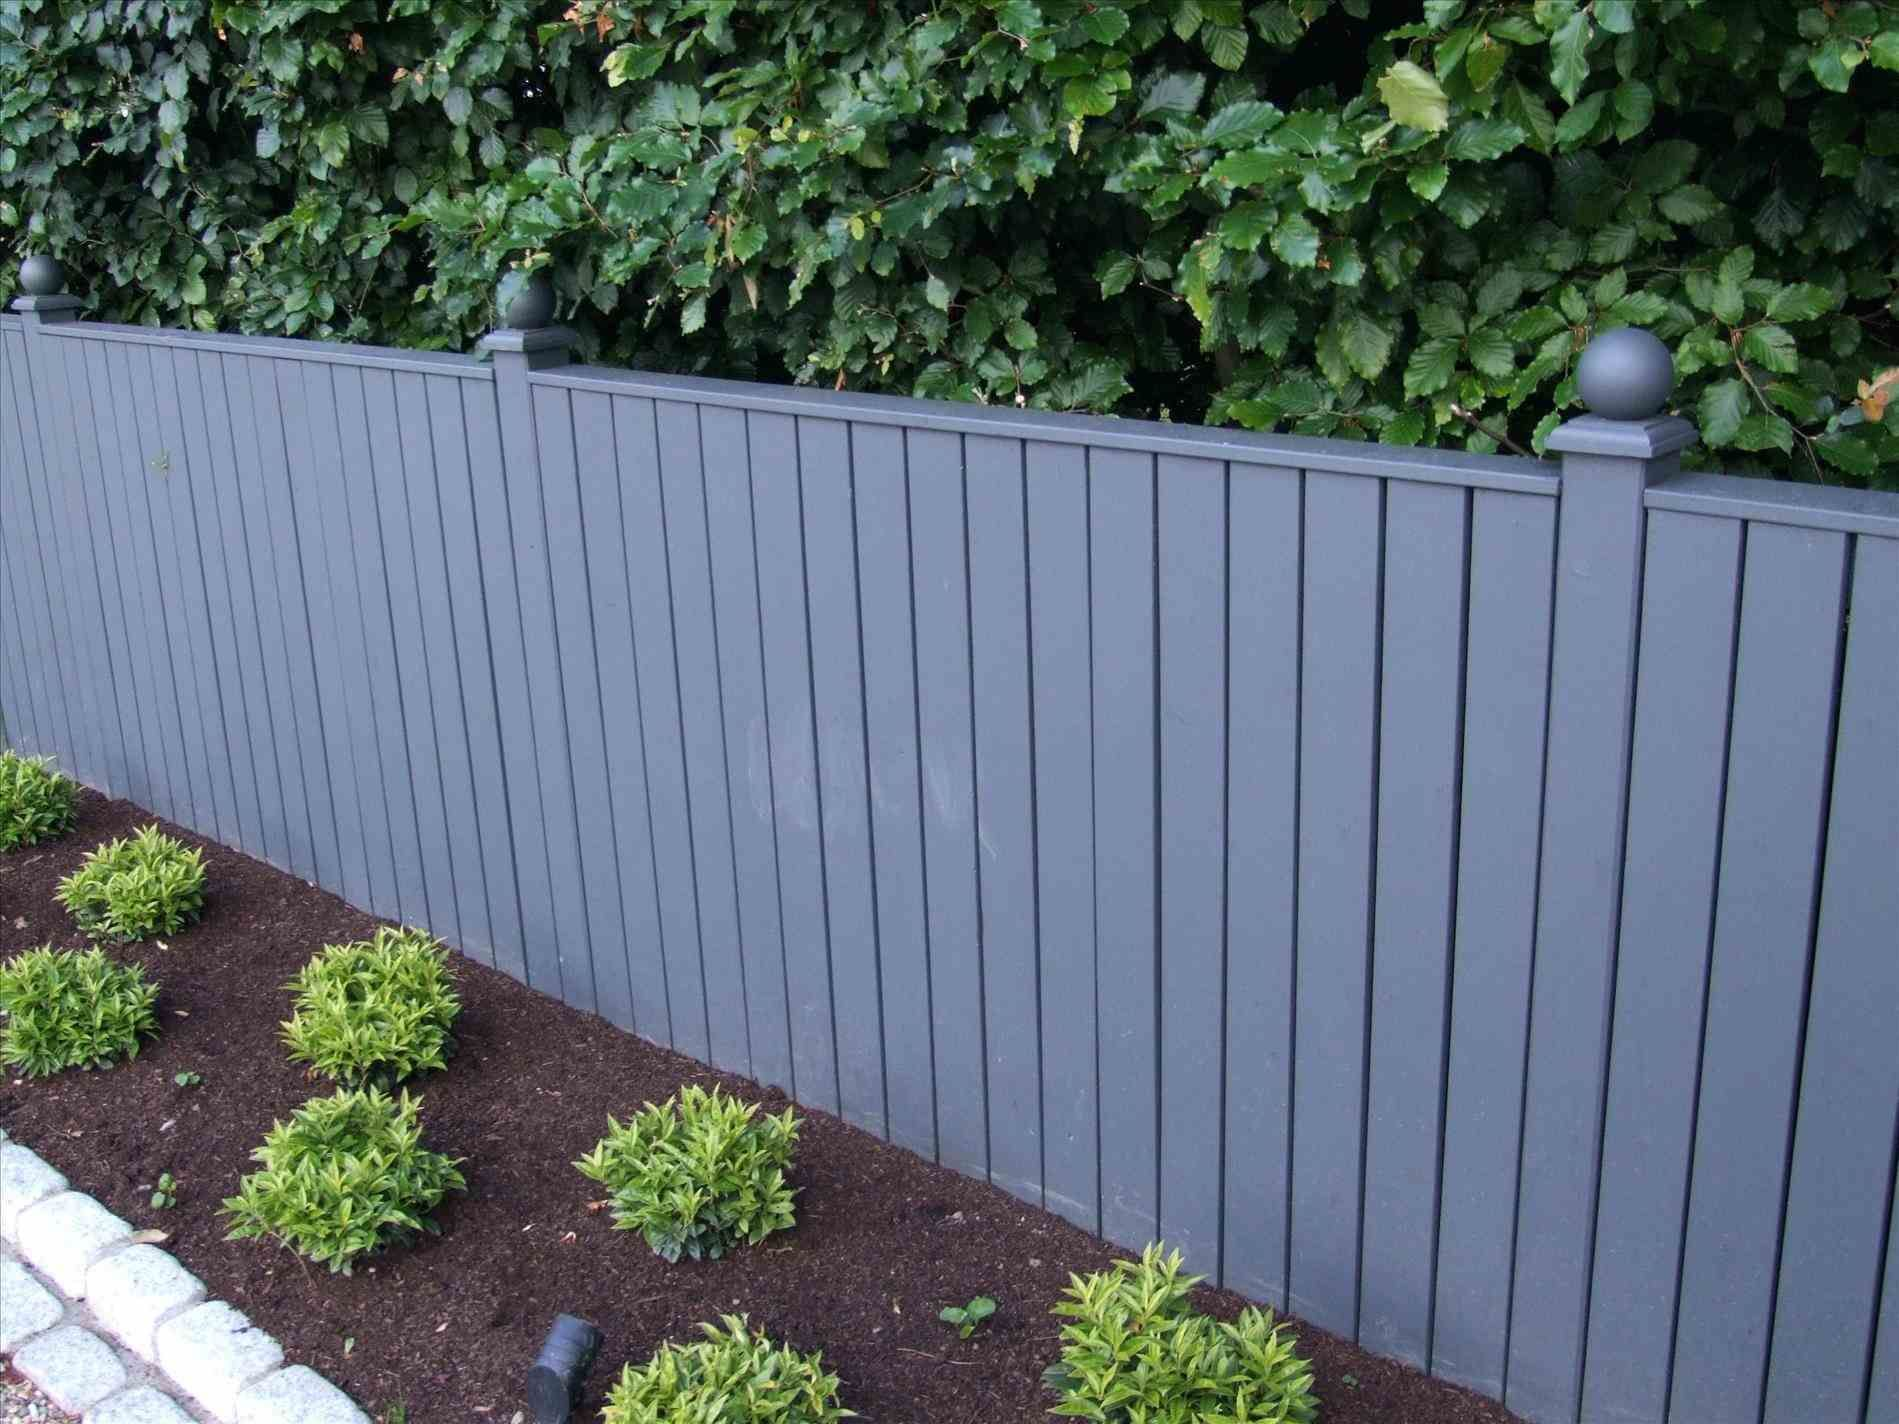 Cuprinol Garden Fence Paint Colours Garden Shade Willow Fence Painted In Shades Furniture Shed Outdoor Paint L Backyard Fences Garden Fence Paint Garden Fence